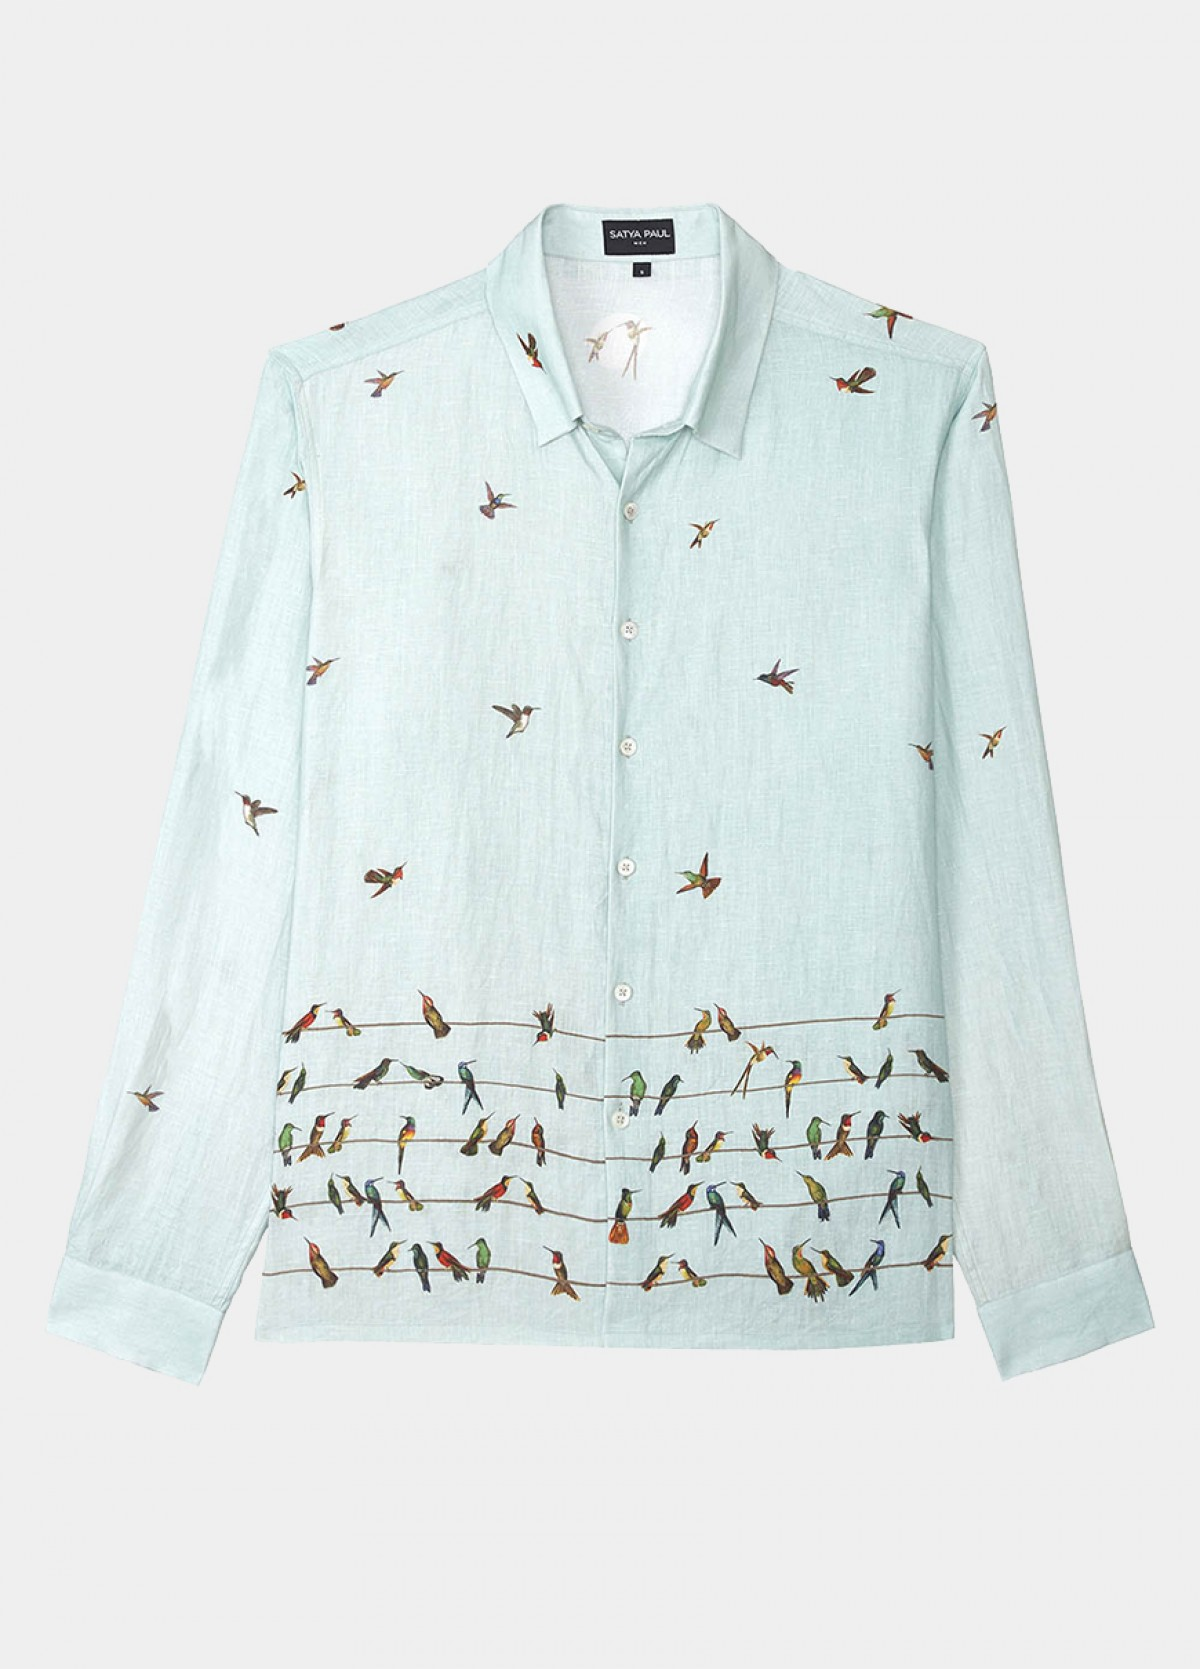 The Happy Hummers Shirt